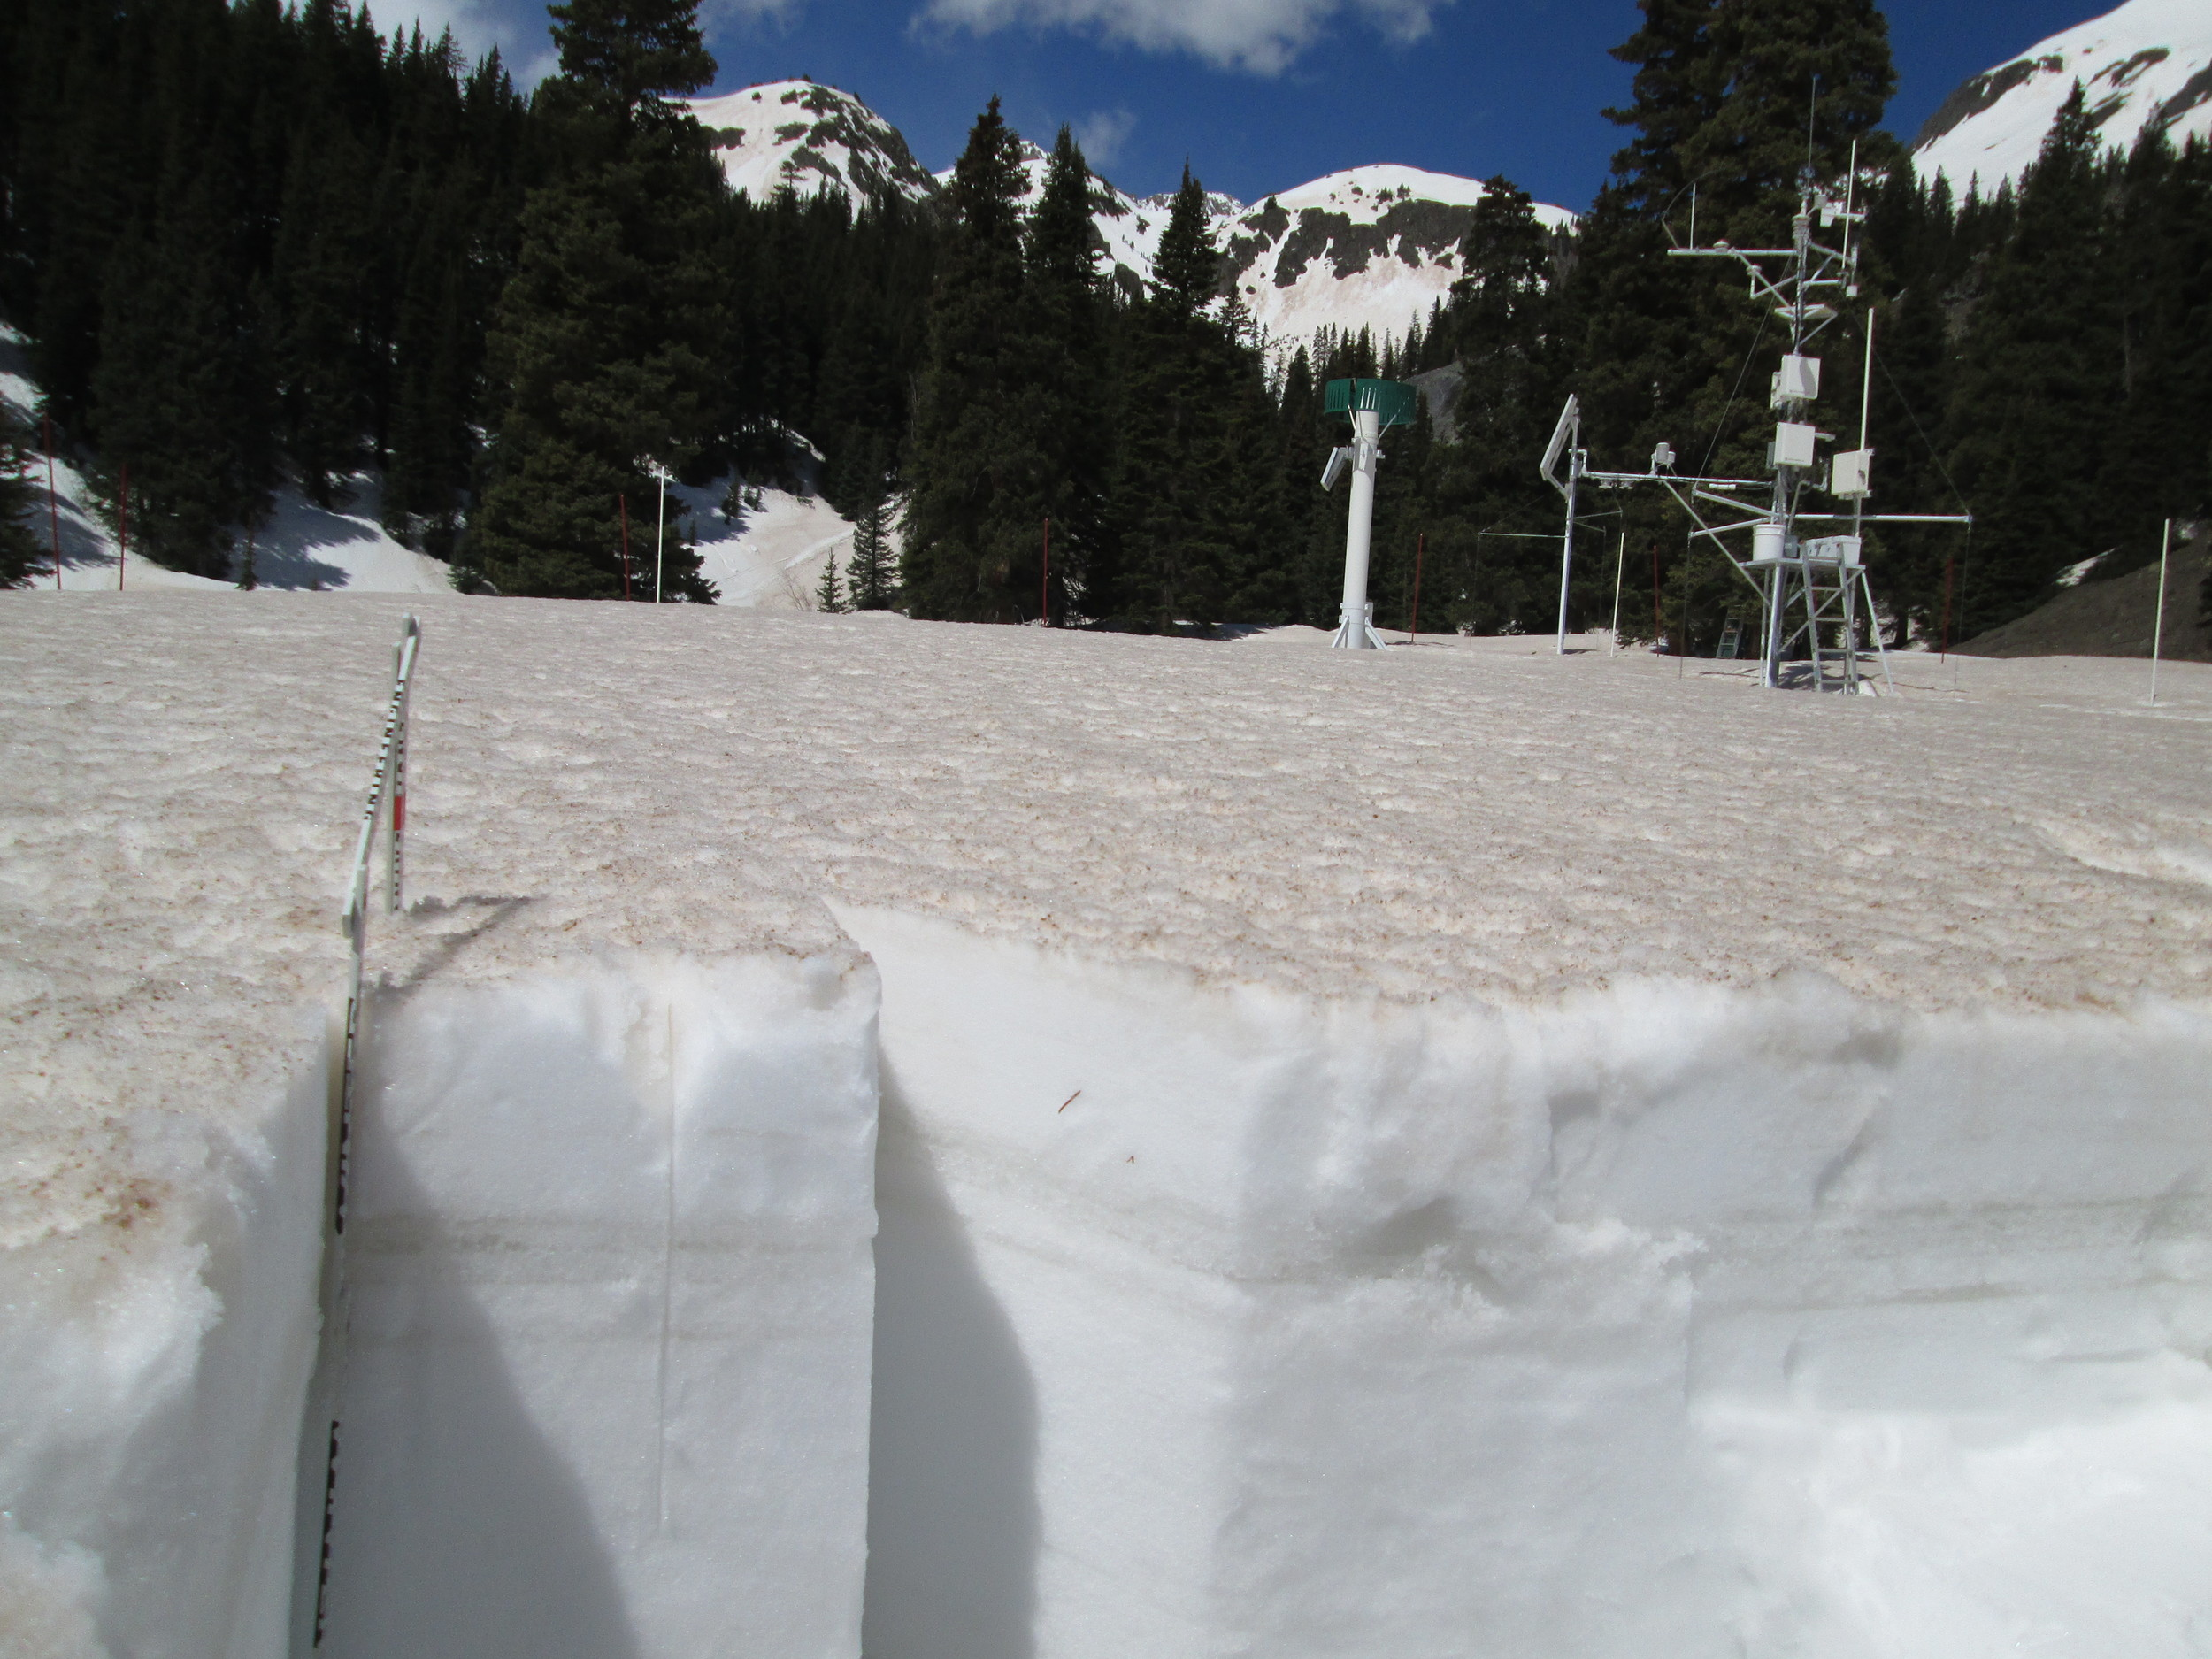 Albedo (broad band) at Swamp Angel Study Plot was 0.42 (42% reflectance) at mid-day on May 21; albedo values fell as low as 0.35 during the spring of 2013, with considerably more dust mass in the snowpack.